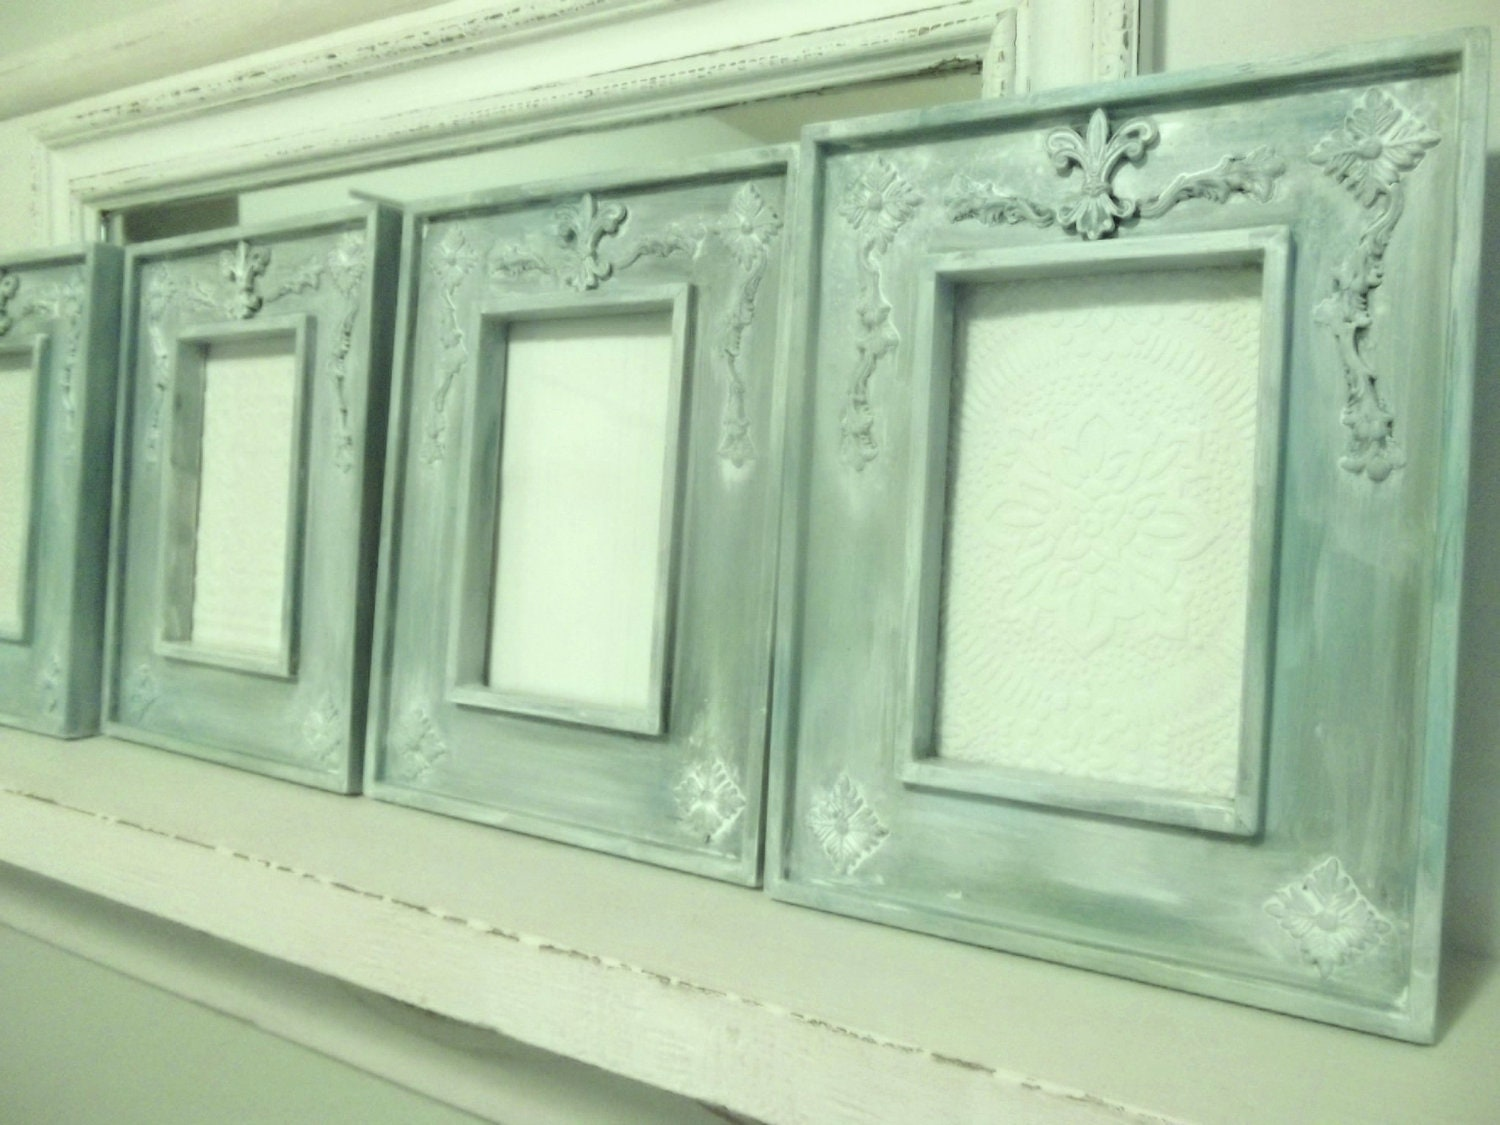 Set of 4 Frames, aqua, teal, blue green, white washed home decor. Tawnystreasures - tawnystreasures